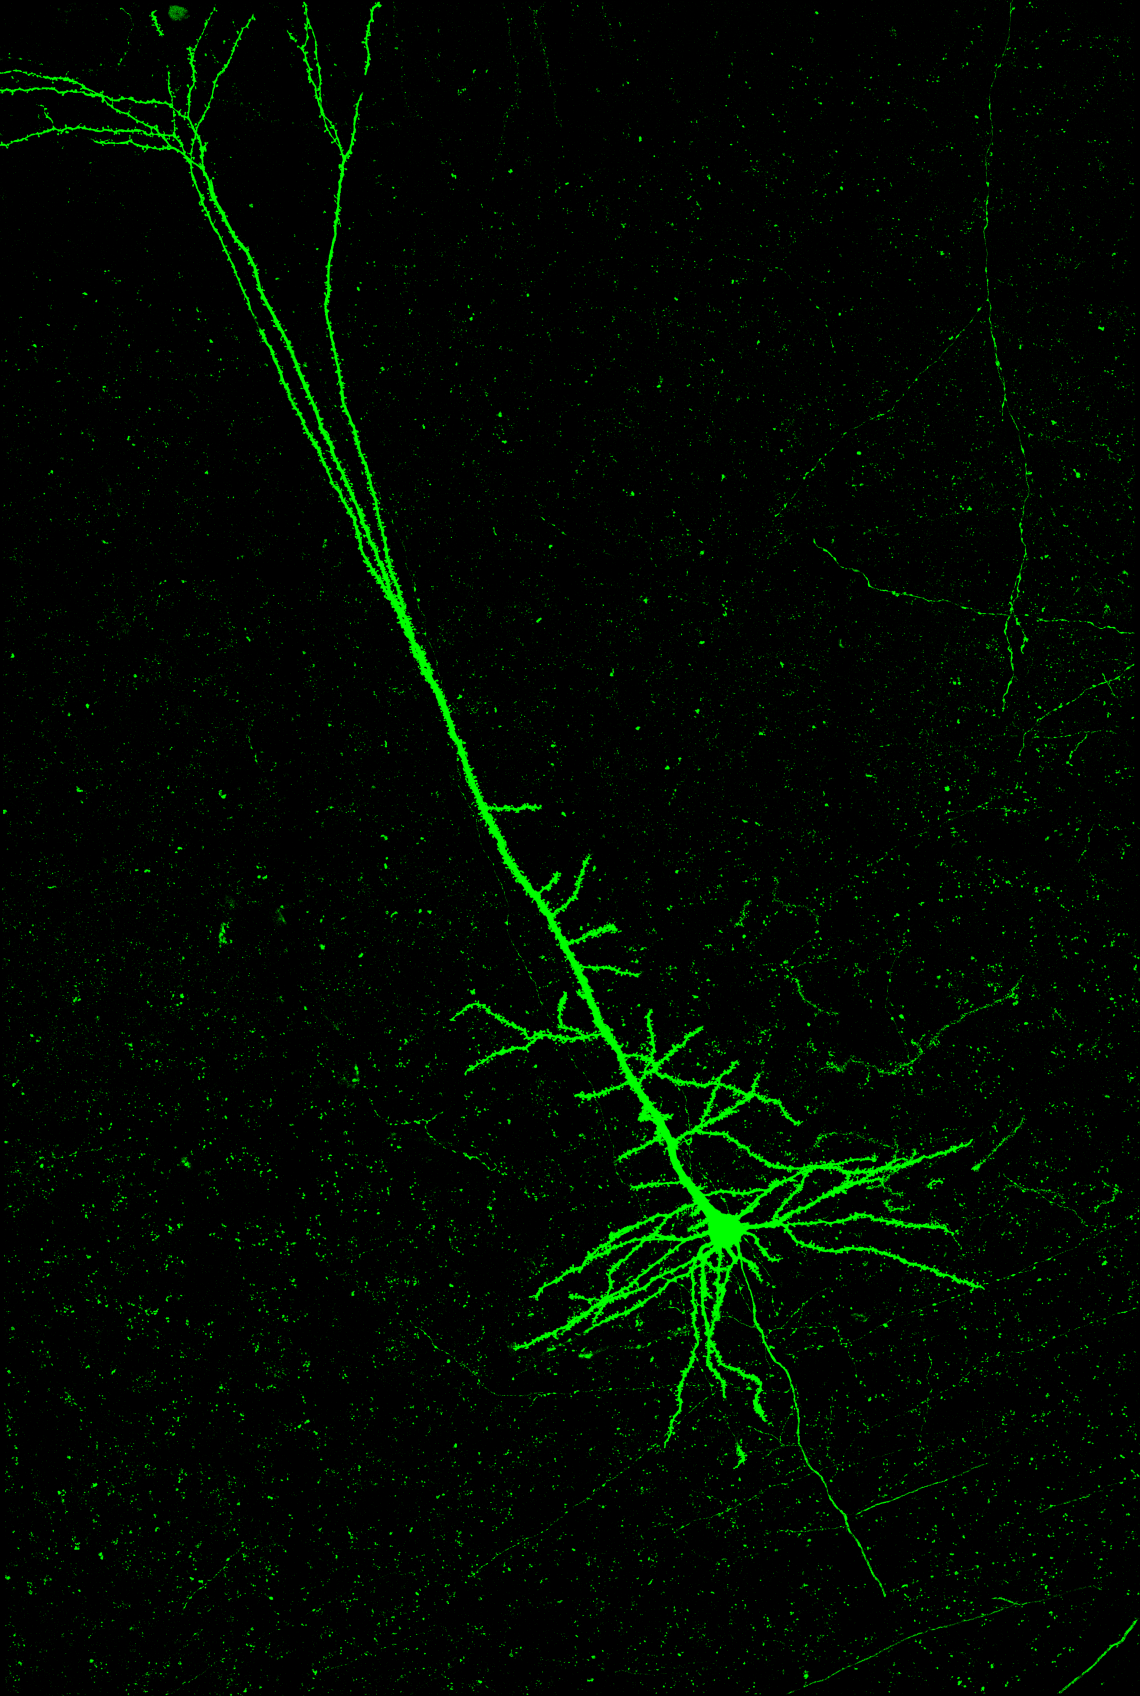 Labelled using anterograde transynaptic delivery of AAV1-cre injected into posterior medial nucleus of thalamus combined with cre-dependent retrograde expression of Jaws-GFP from auditory thalamus